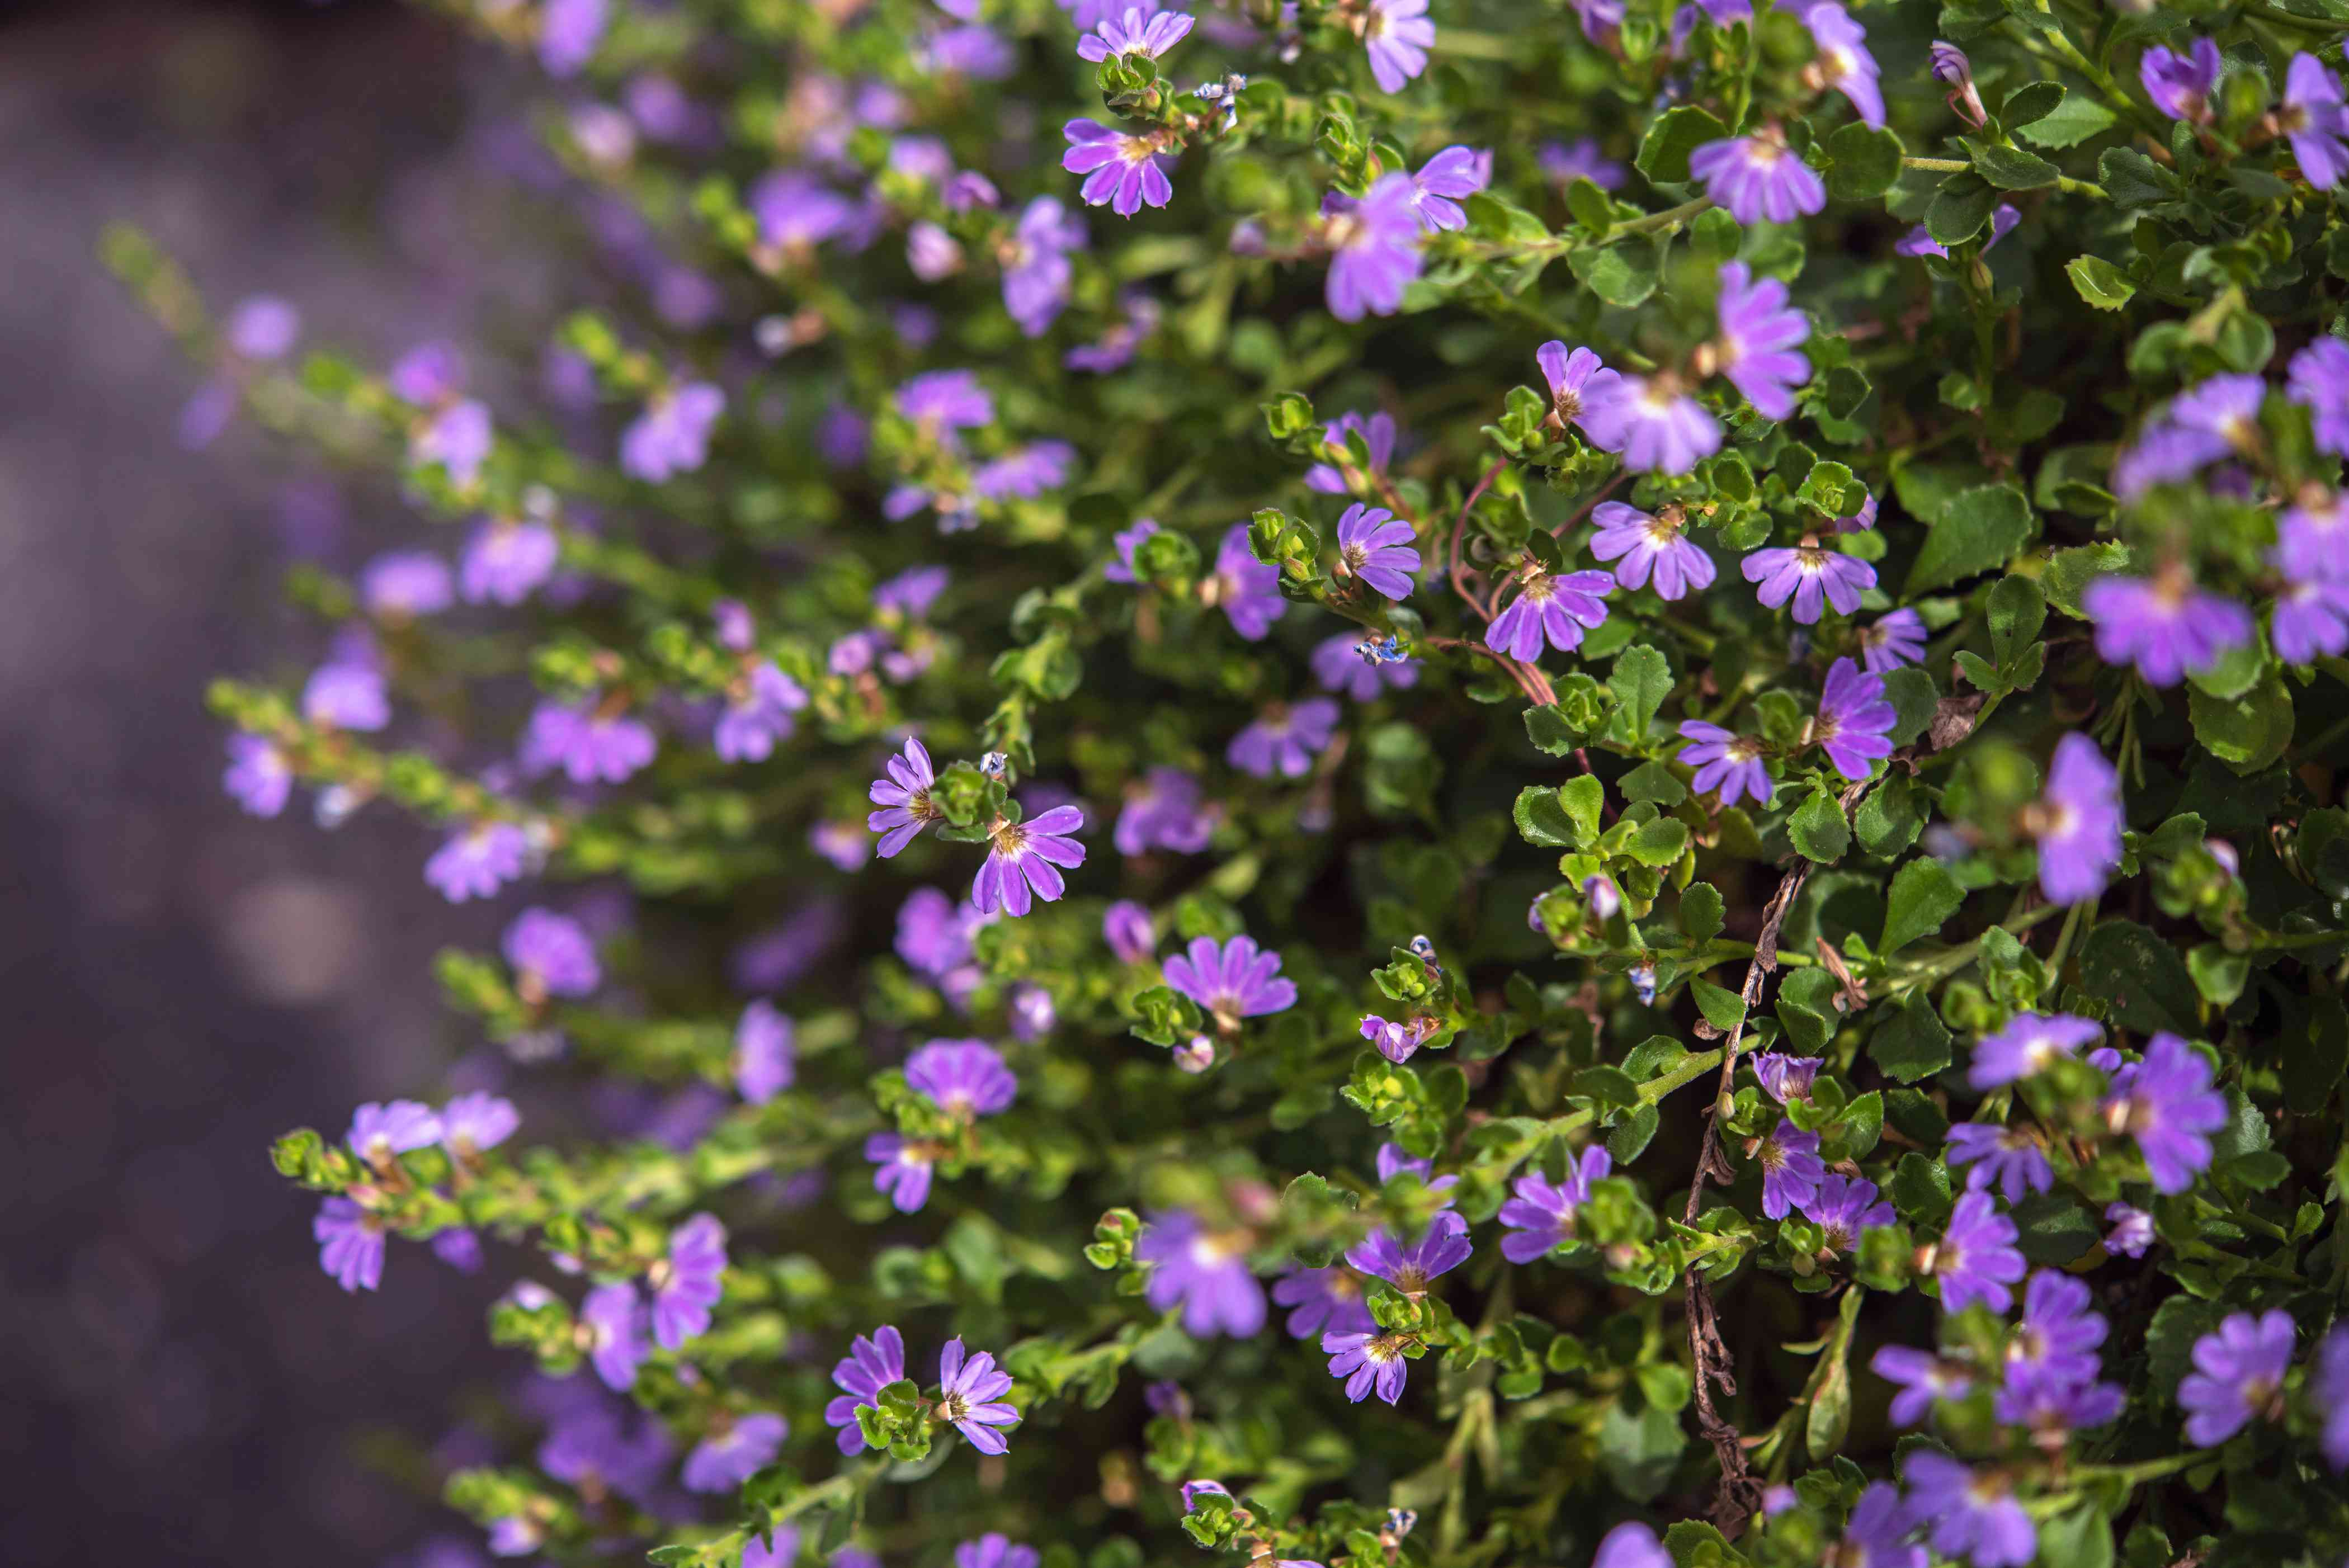 Scaevola plant with small purple flowers on thin green leaves closeup